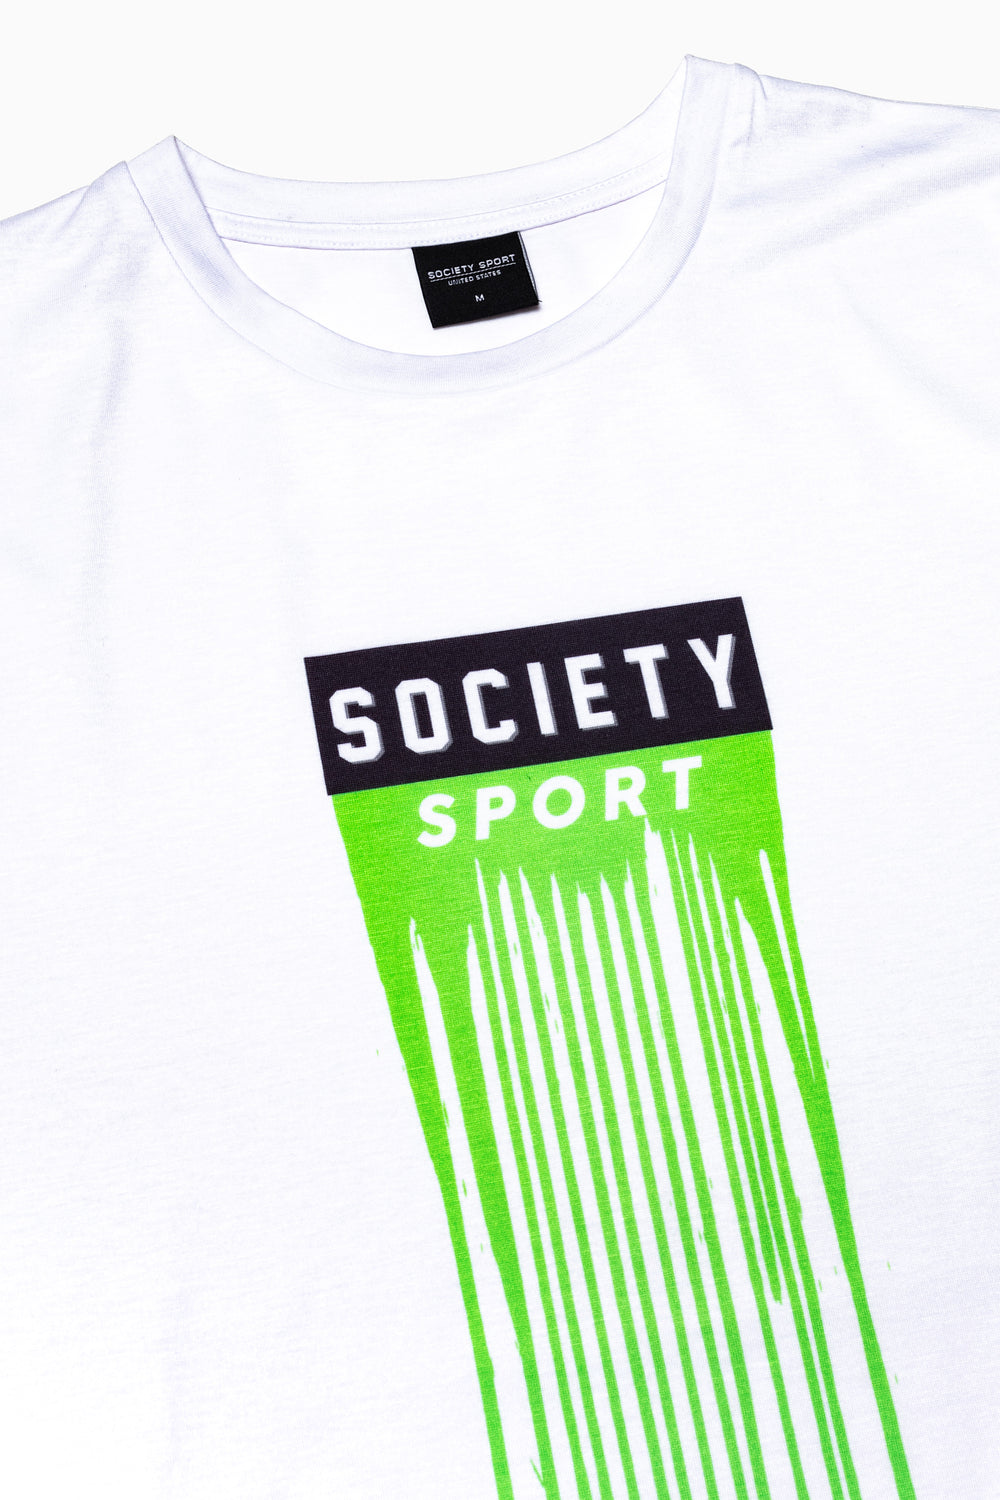 SOCIETY SPORT LOGO DRIPS MEN'S T-SHIRT